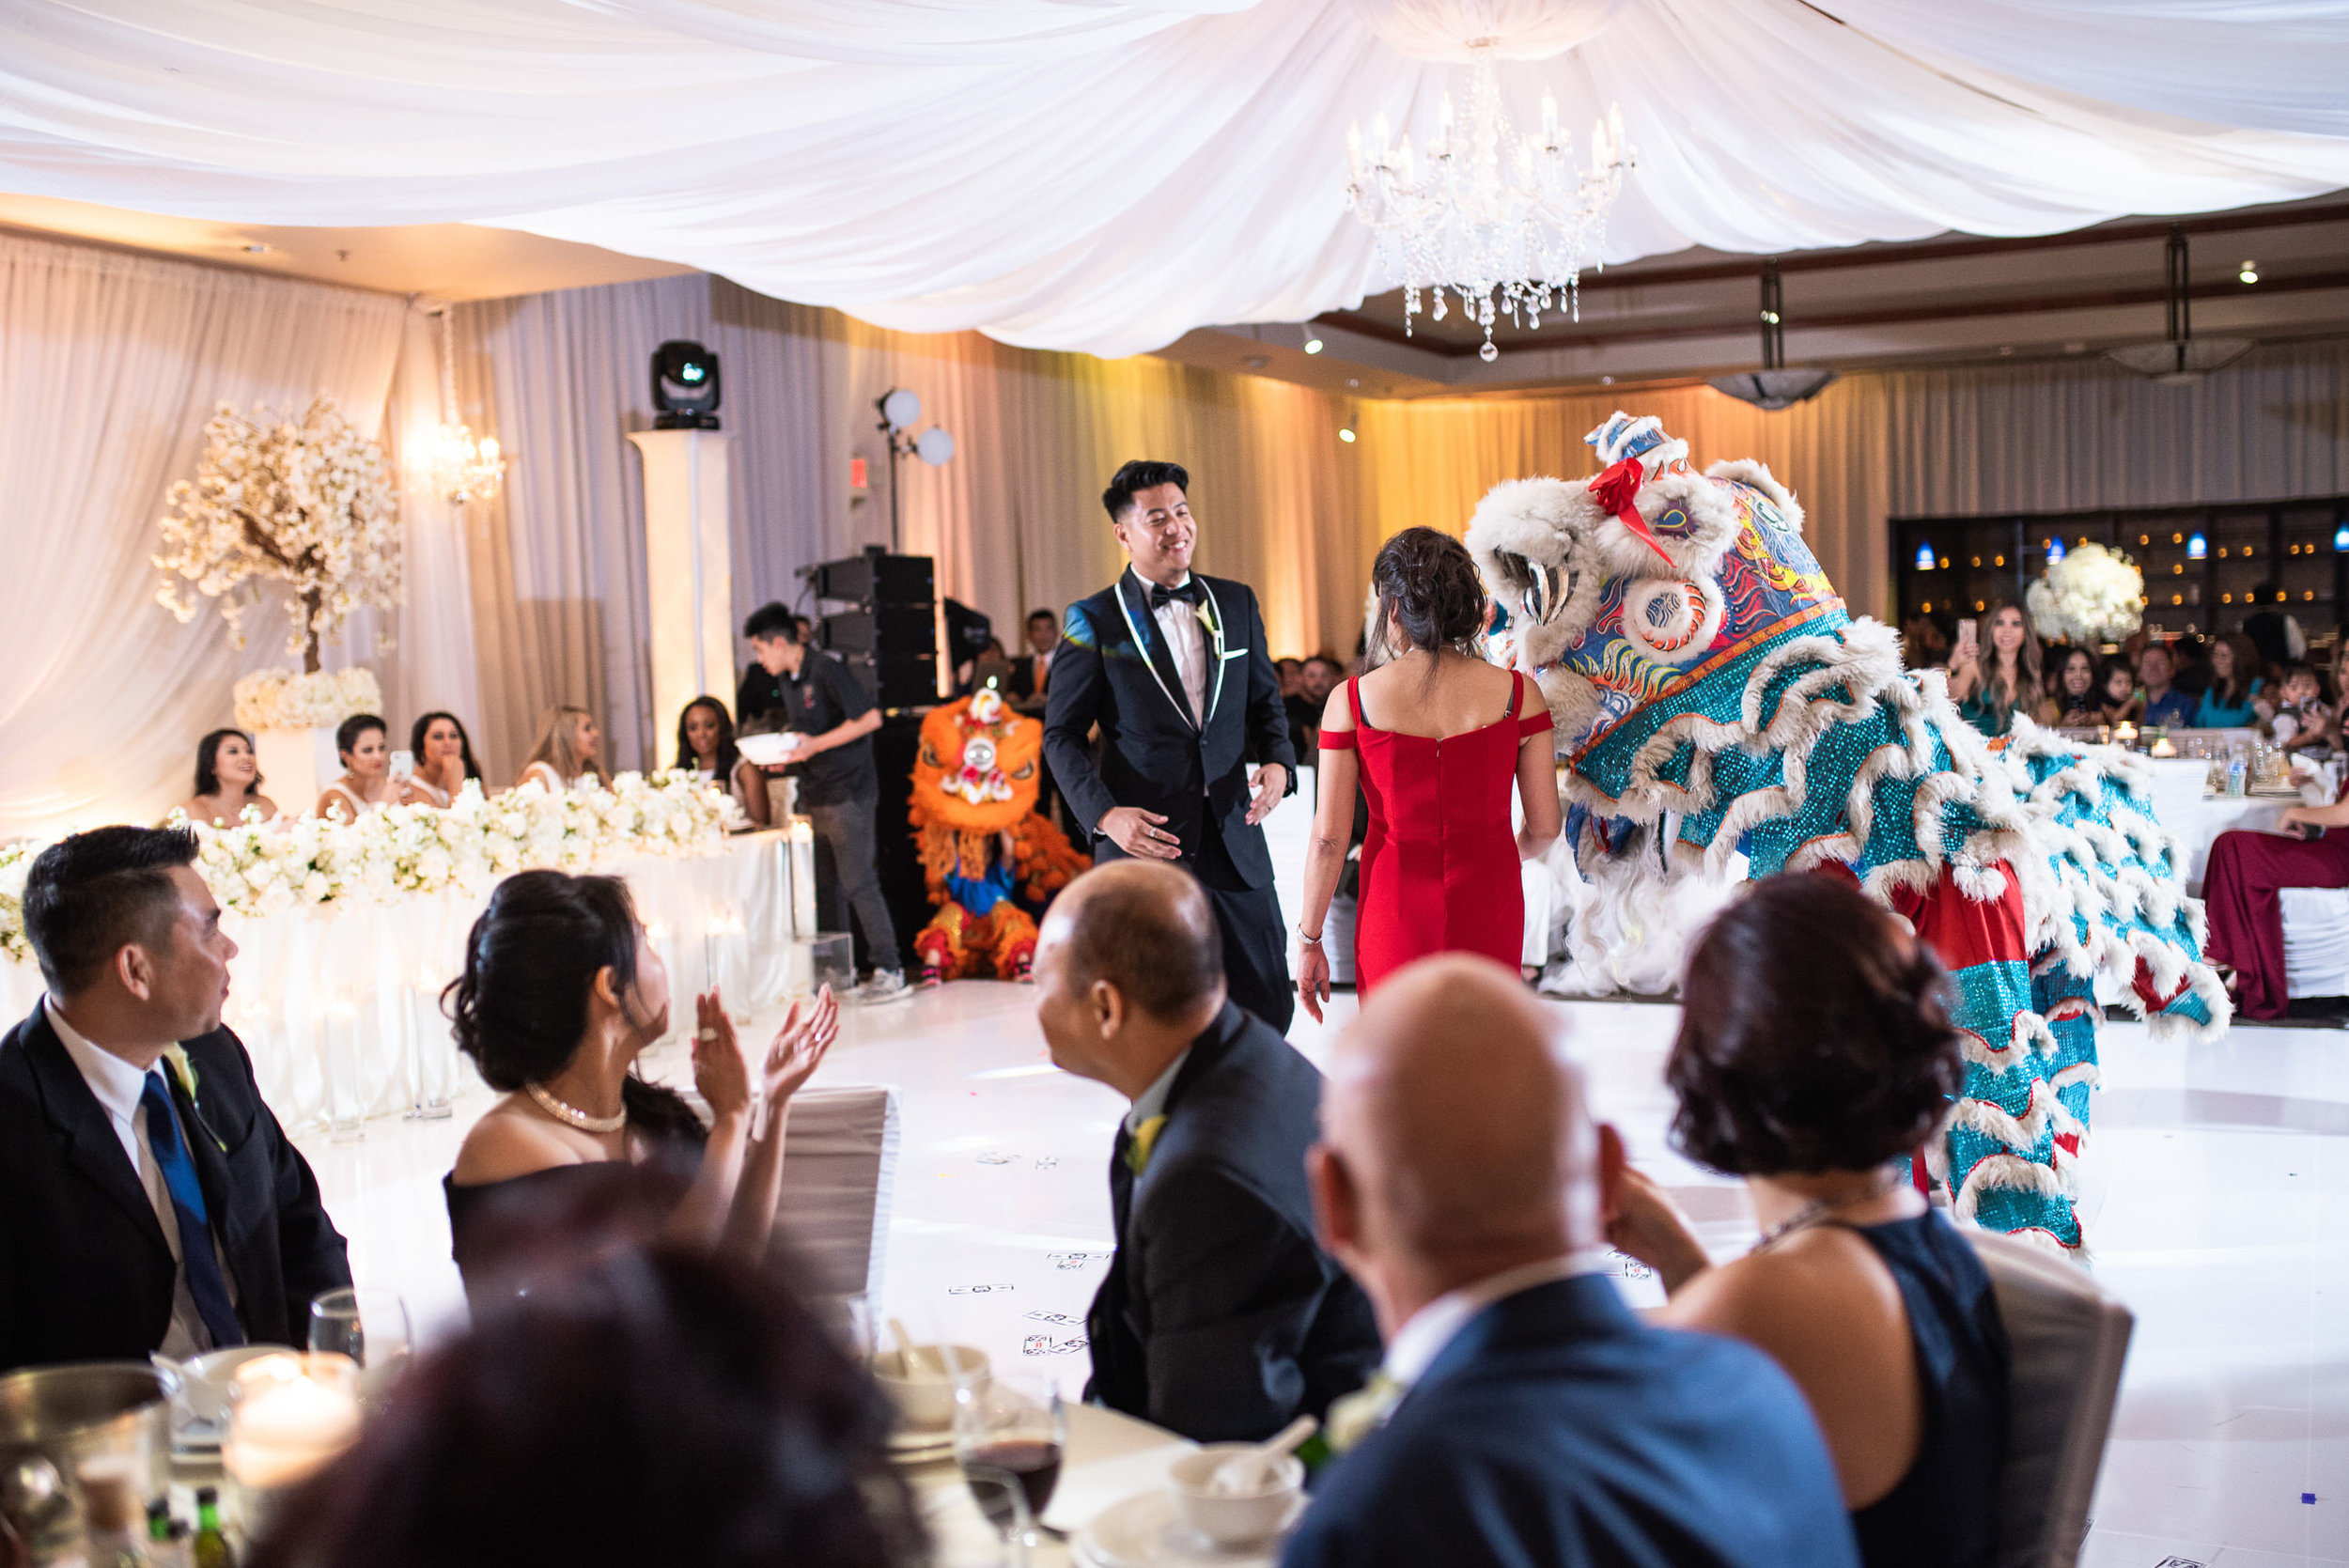 Dream_Wedding_Thanh_Thanh-2727.jpg